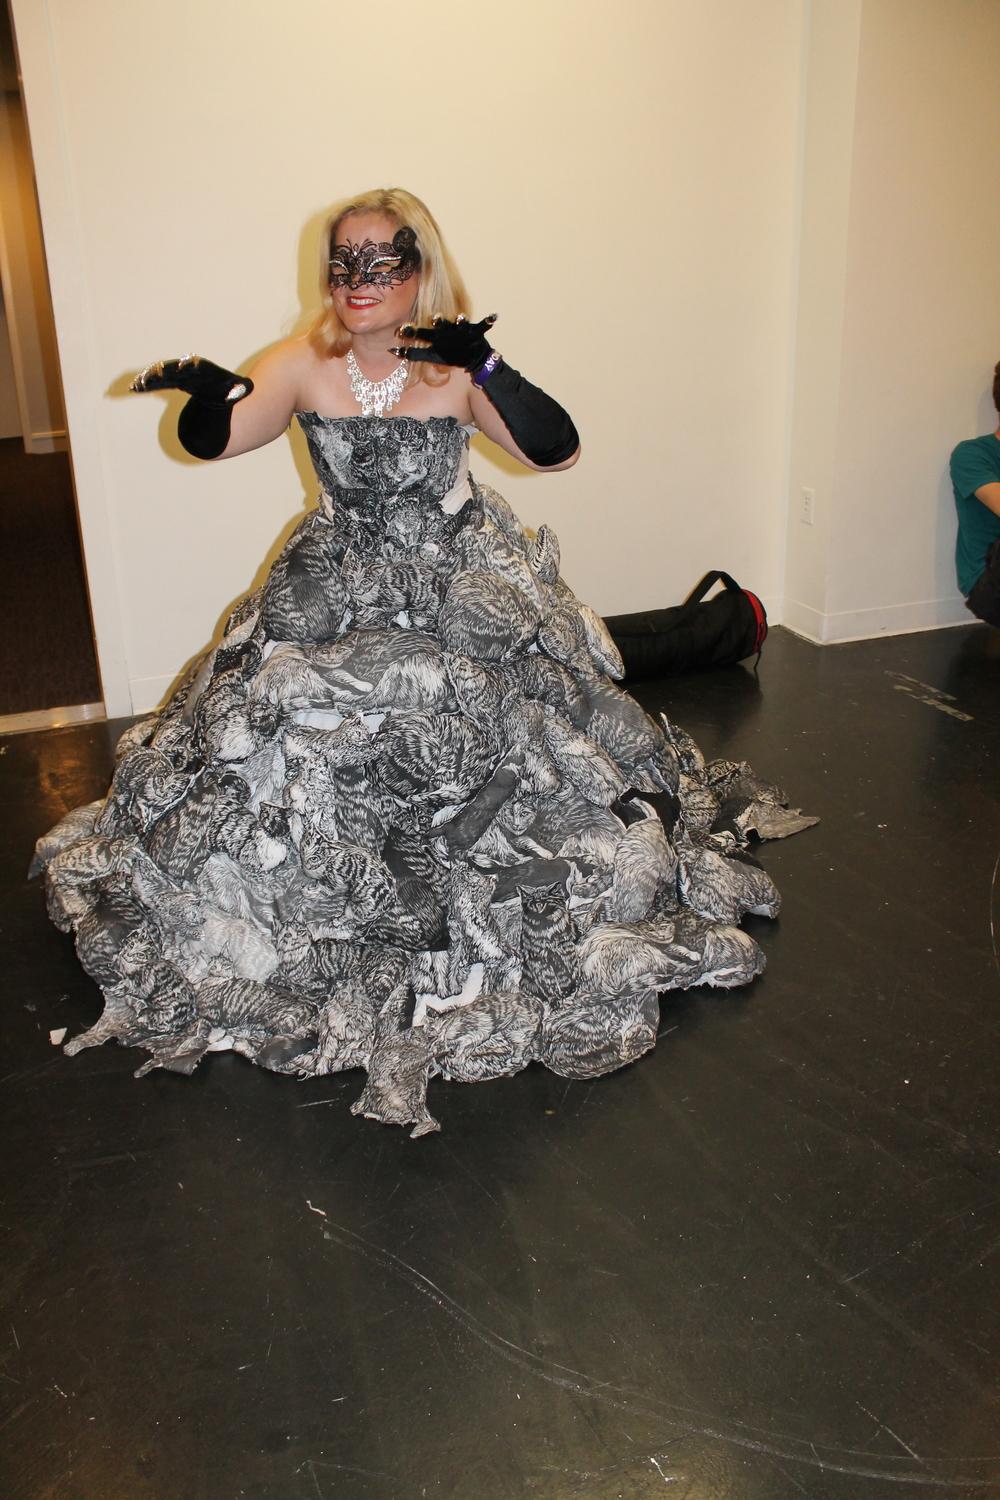 This gorgeous gown was a runner up. It's made completely with stuffed toy kitties.